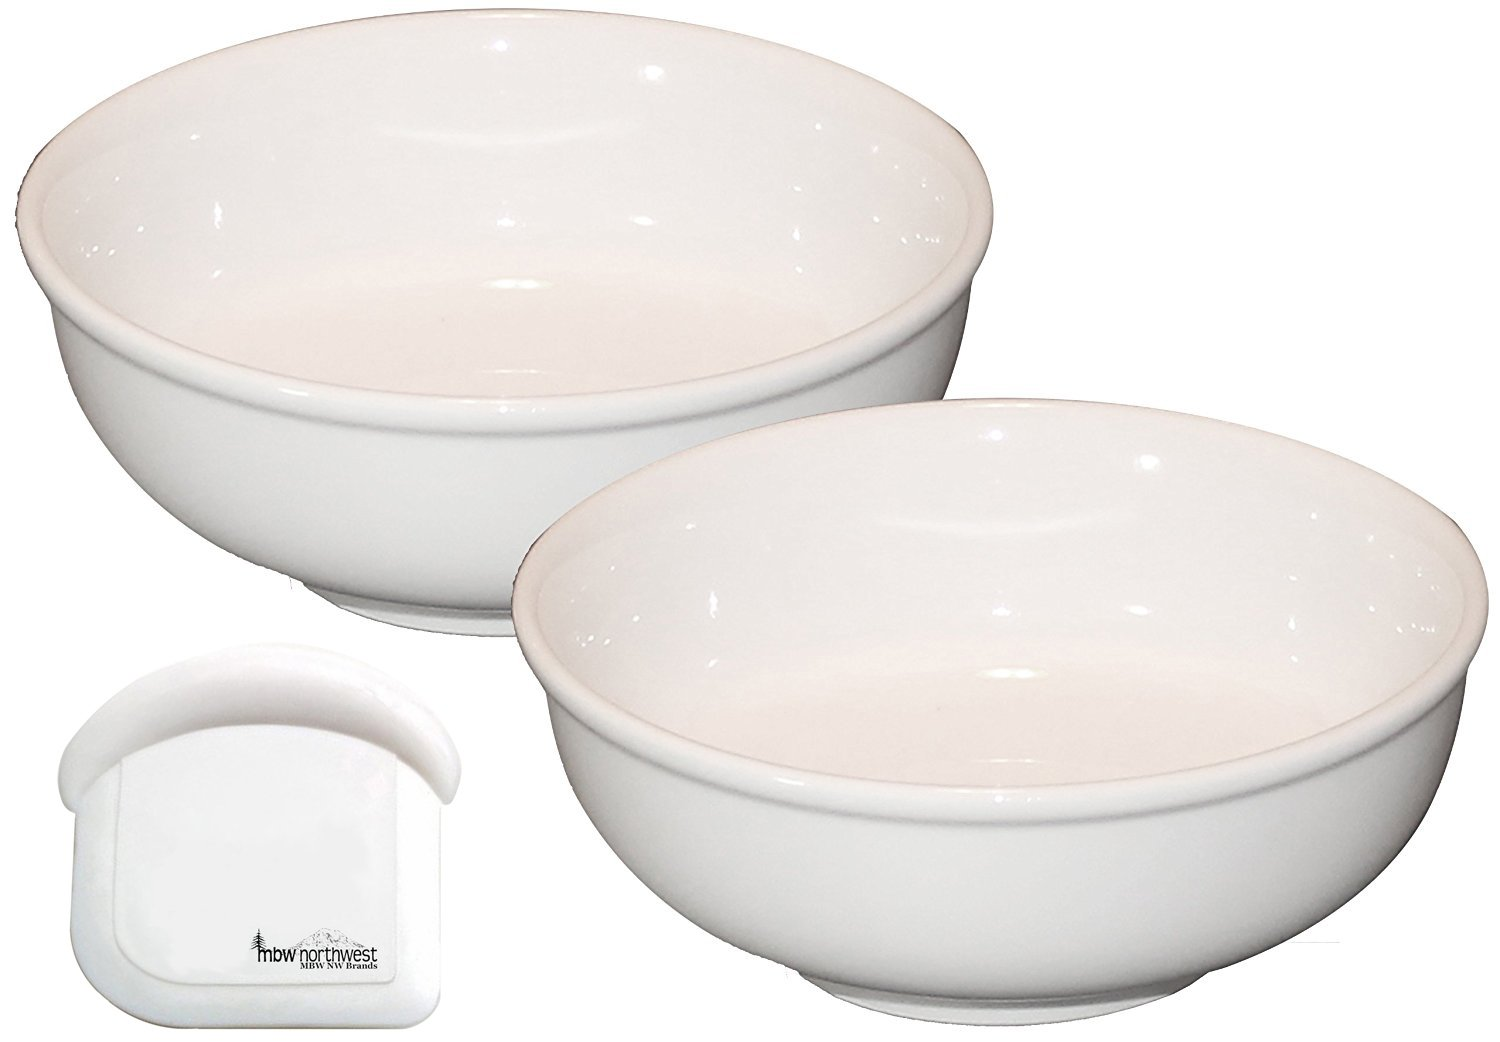 Cameo Ceramic Pho Soup Bowls with Pan Scraper, 7.25 Inch, 38 Ounce, Set of 2, White Ivory